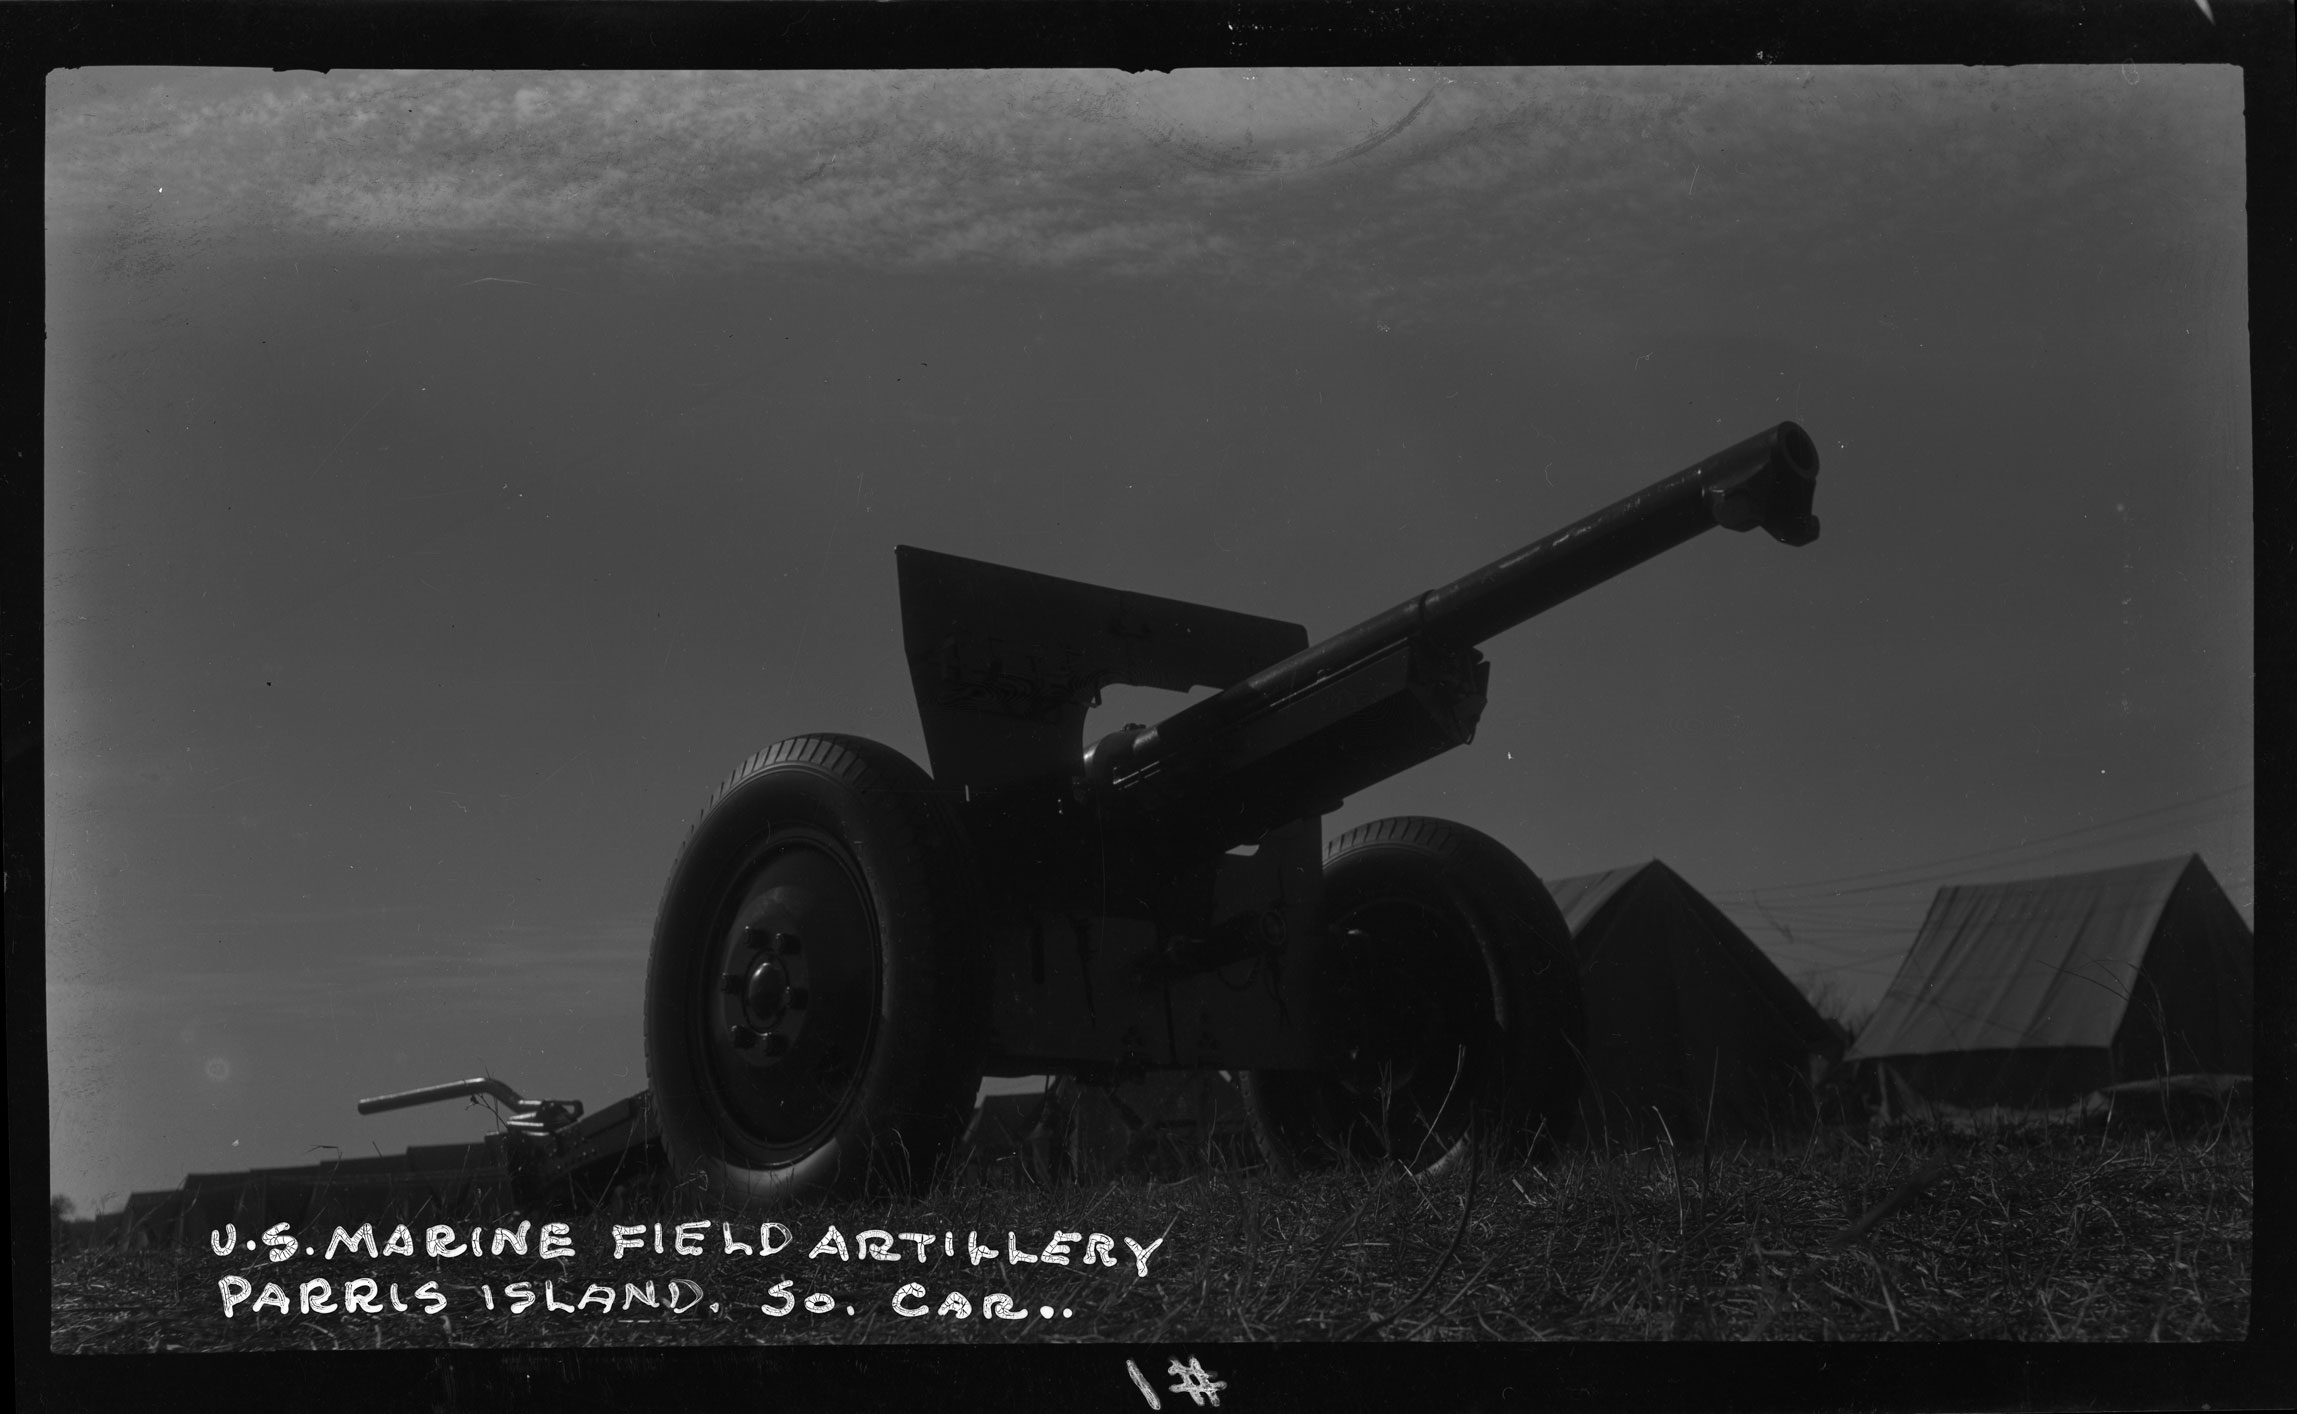 U.S. Marine Field Artillery, Parris Island So. Car.